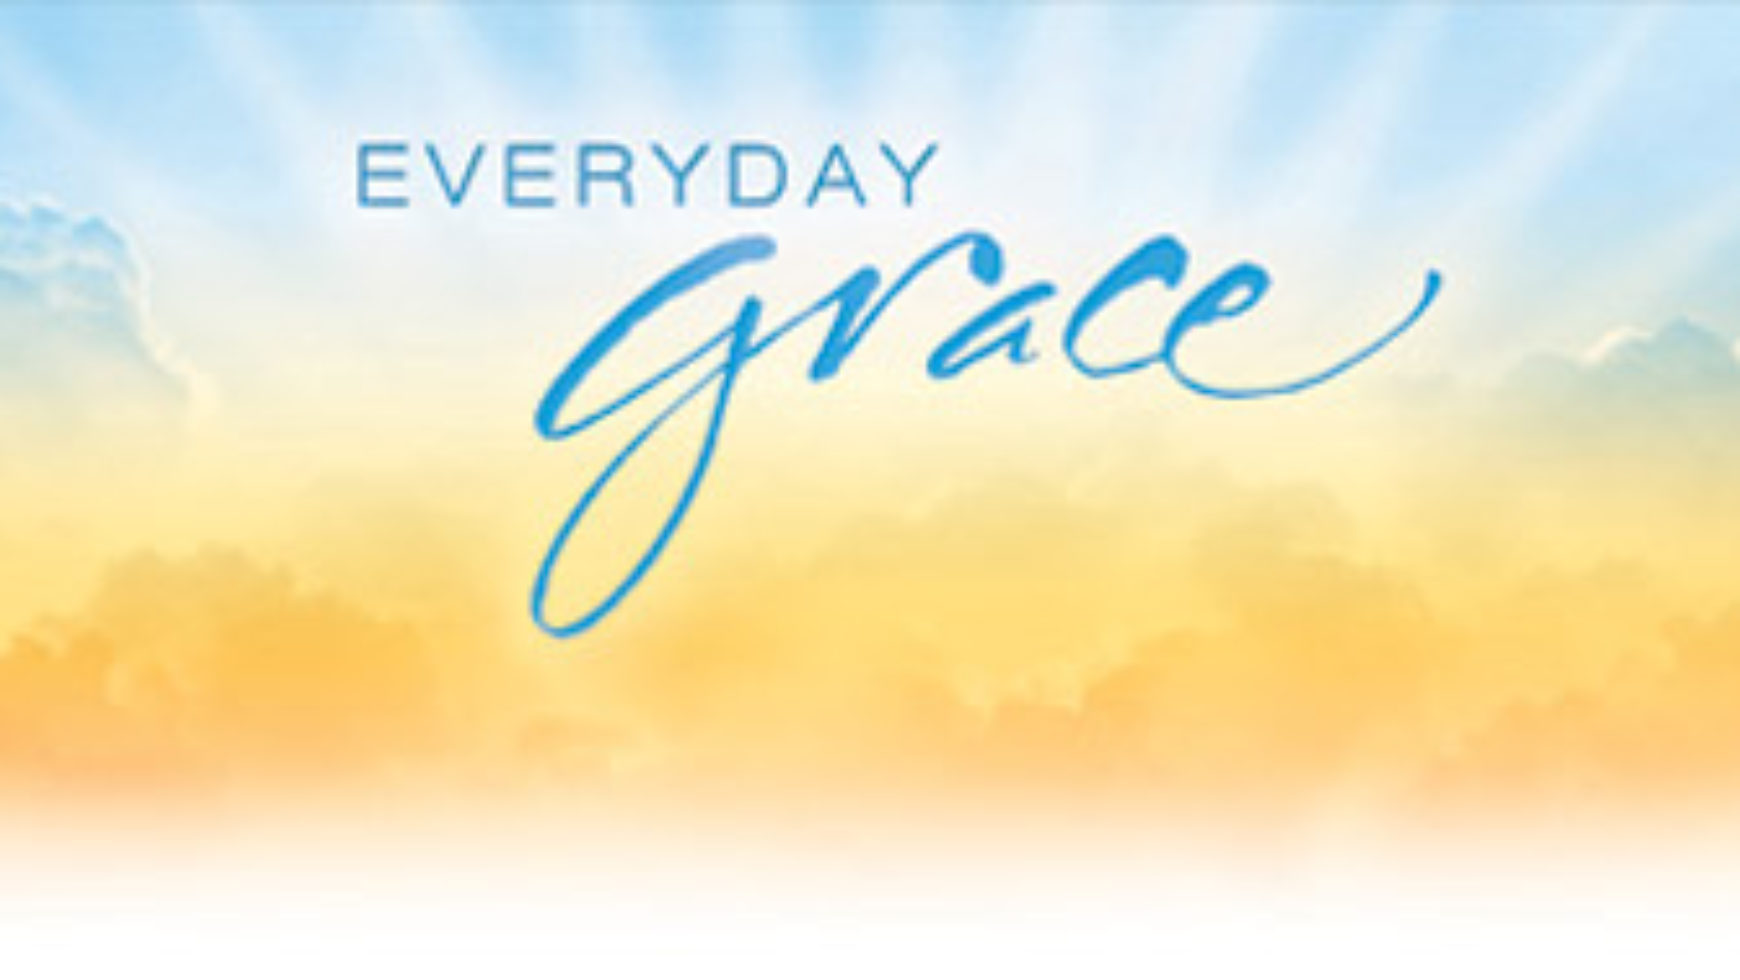 GRACE FOR EVERYDAY LIFE